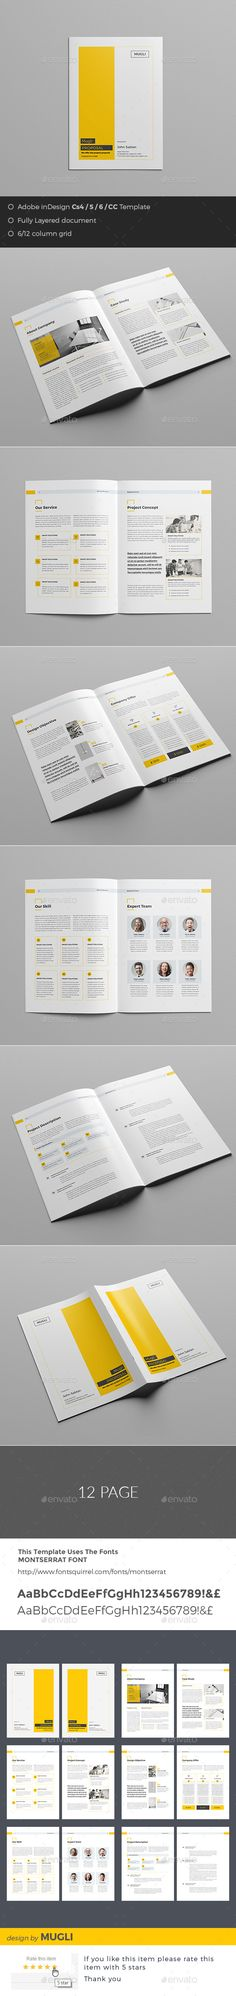 Job Analysis Worksheet Template  Template Worksheets And Job